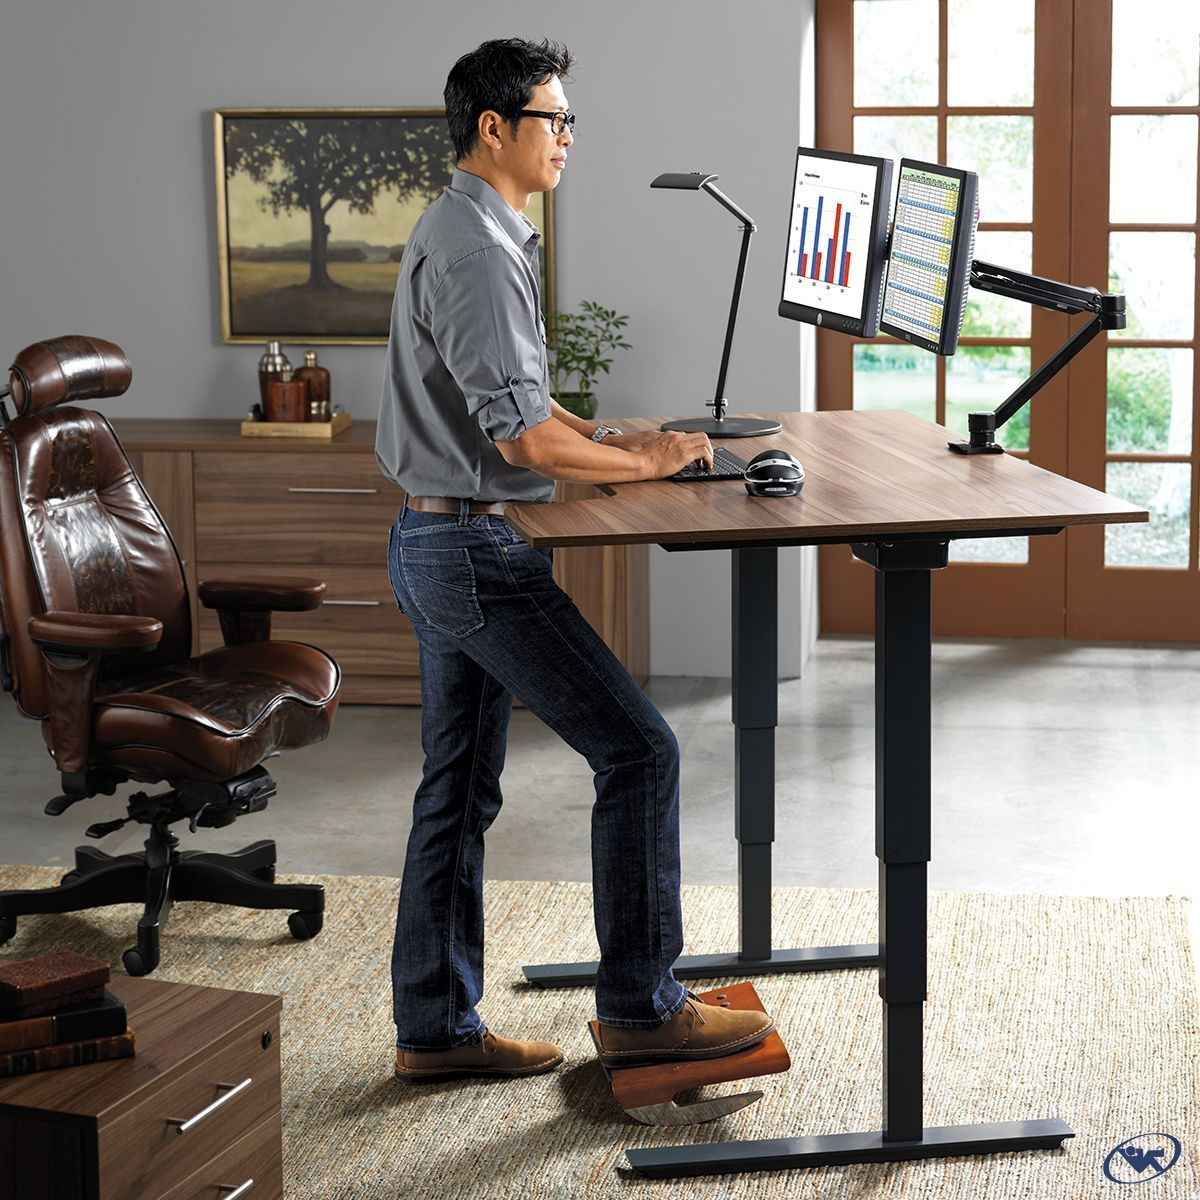 Your workspace is a system based on whole body ergonomics